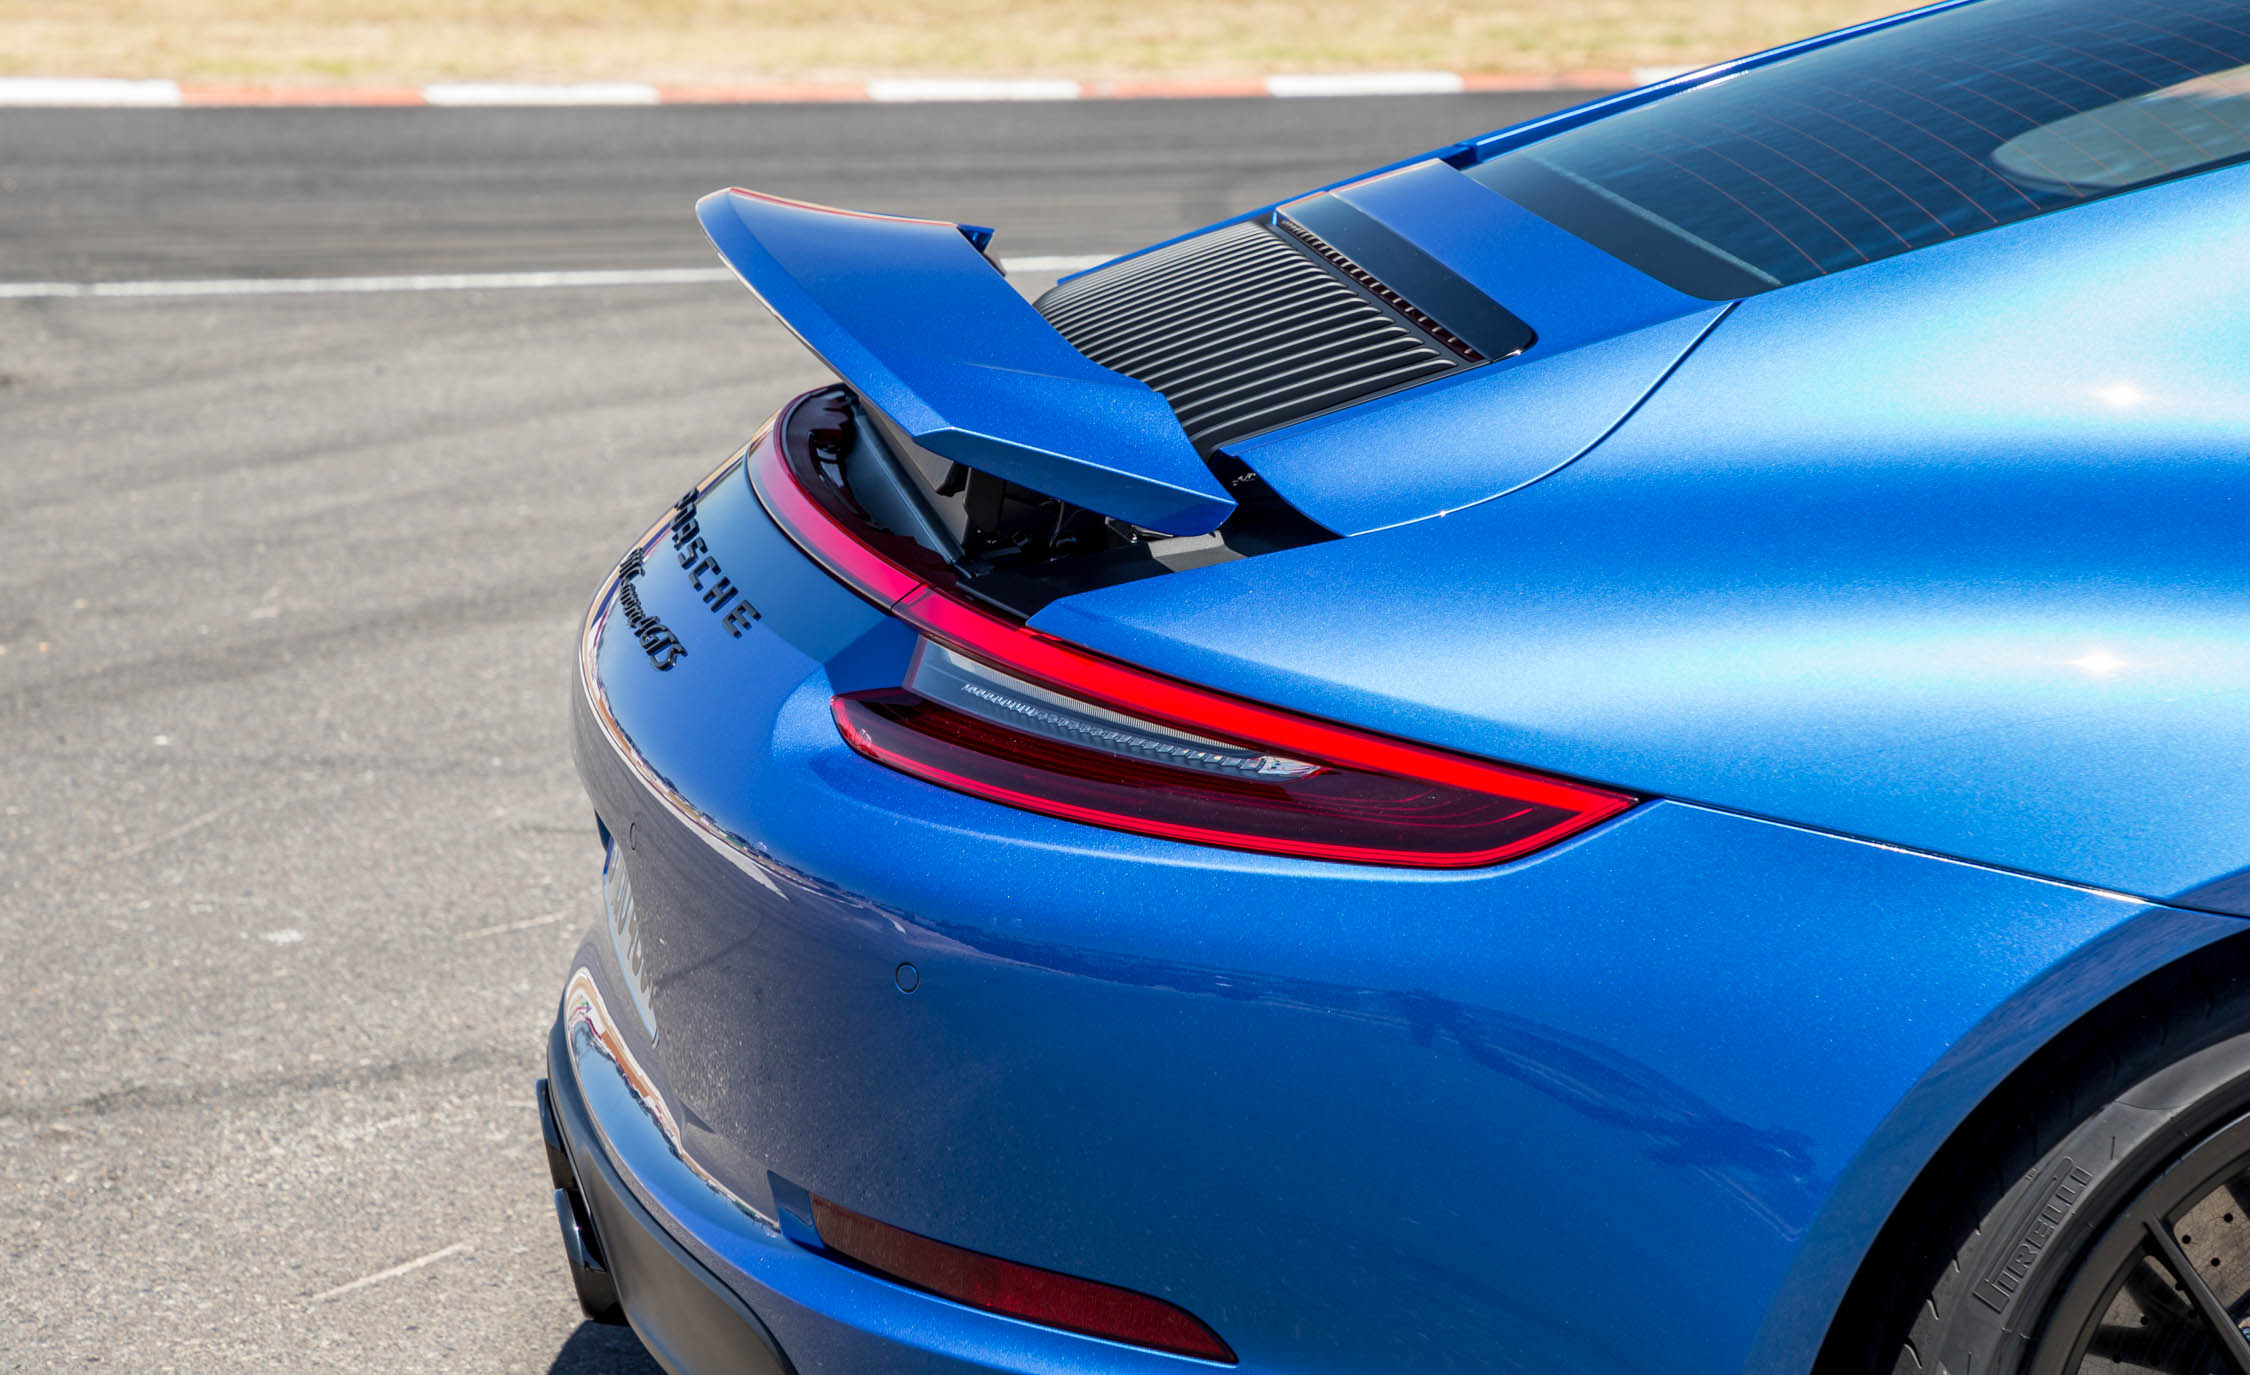 2017 Porsche 911 Carrera 4 GTS Coupe Exterior View Rear Wing Spoiler (Photo 23 of 97)